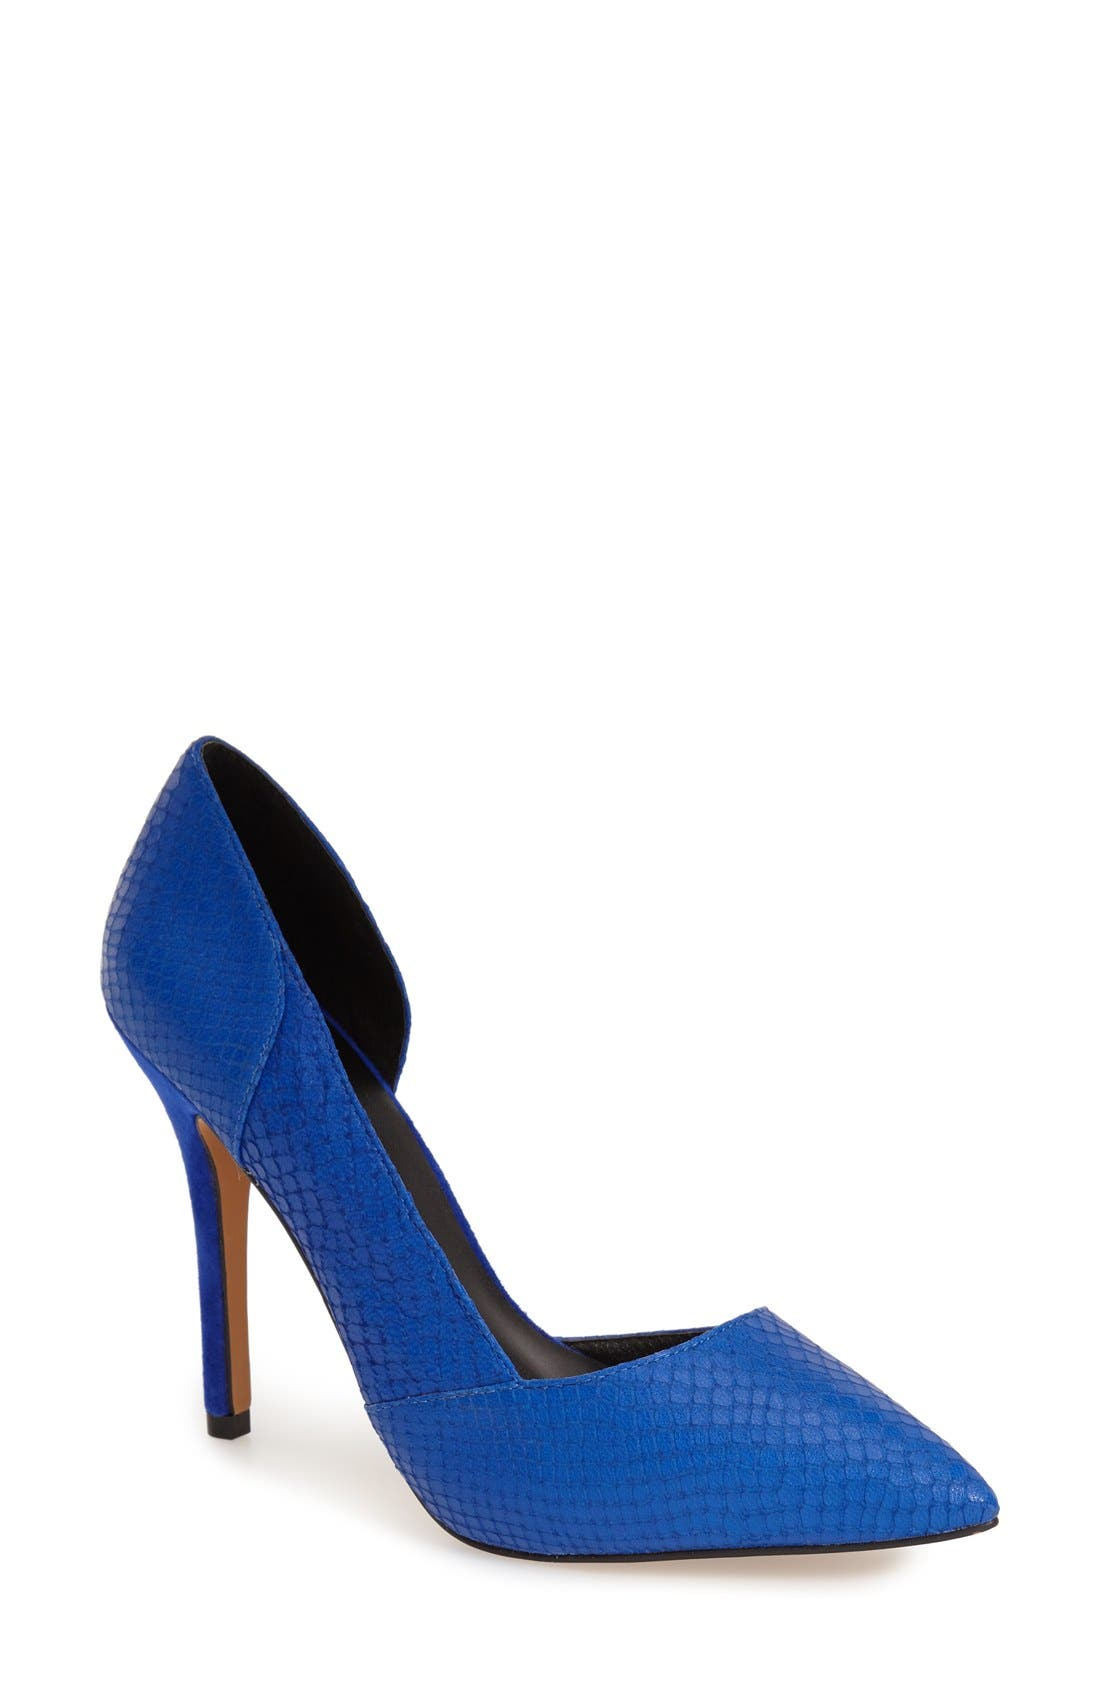 Alternate Image 1 Selected - Nicole Miller 'Camilla' Pointy Toe Pump (Women)